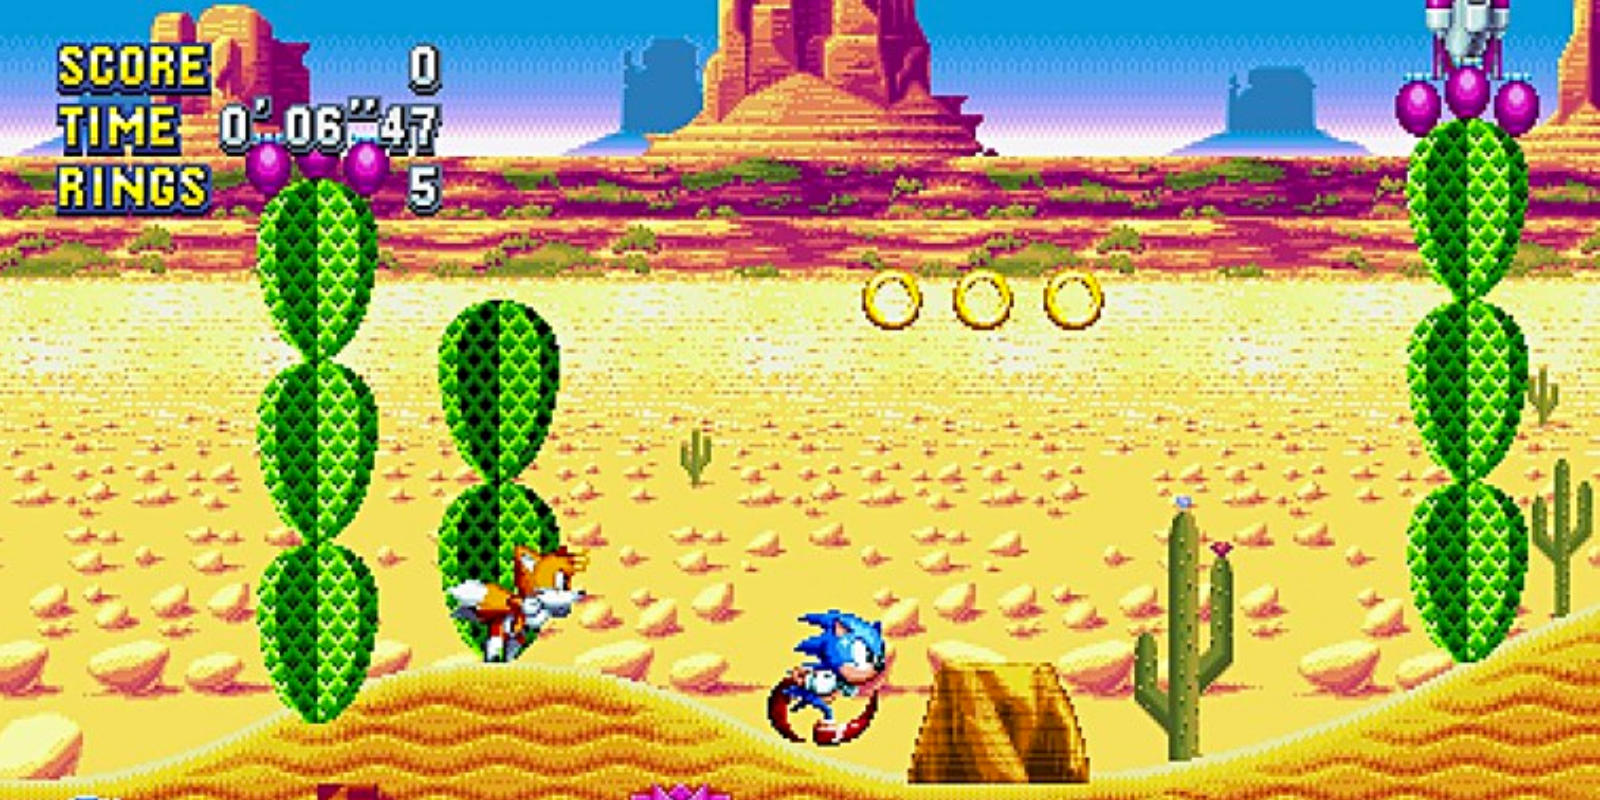 Sonic and Tails dash through the rocky desert in Mirage Saloon Zone